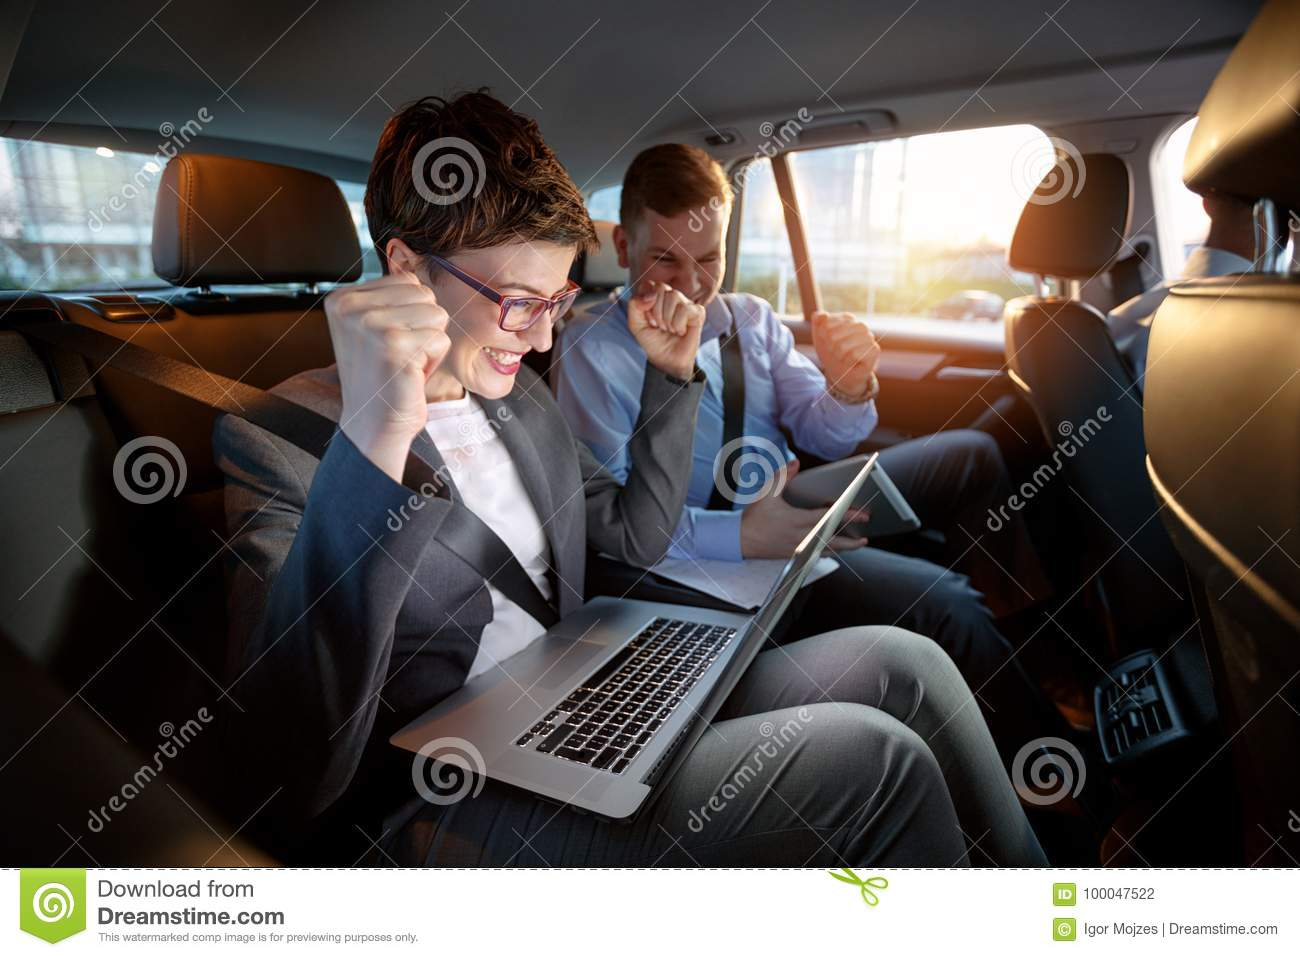 Excited businesspeople looking at laptop in car on trip